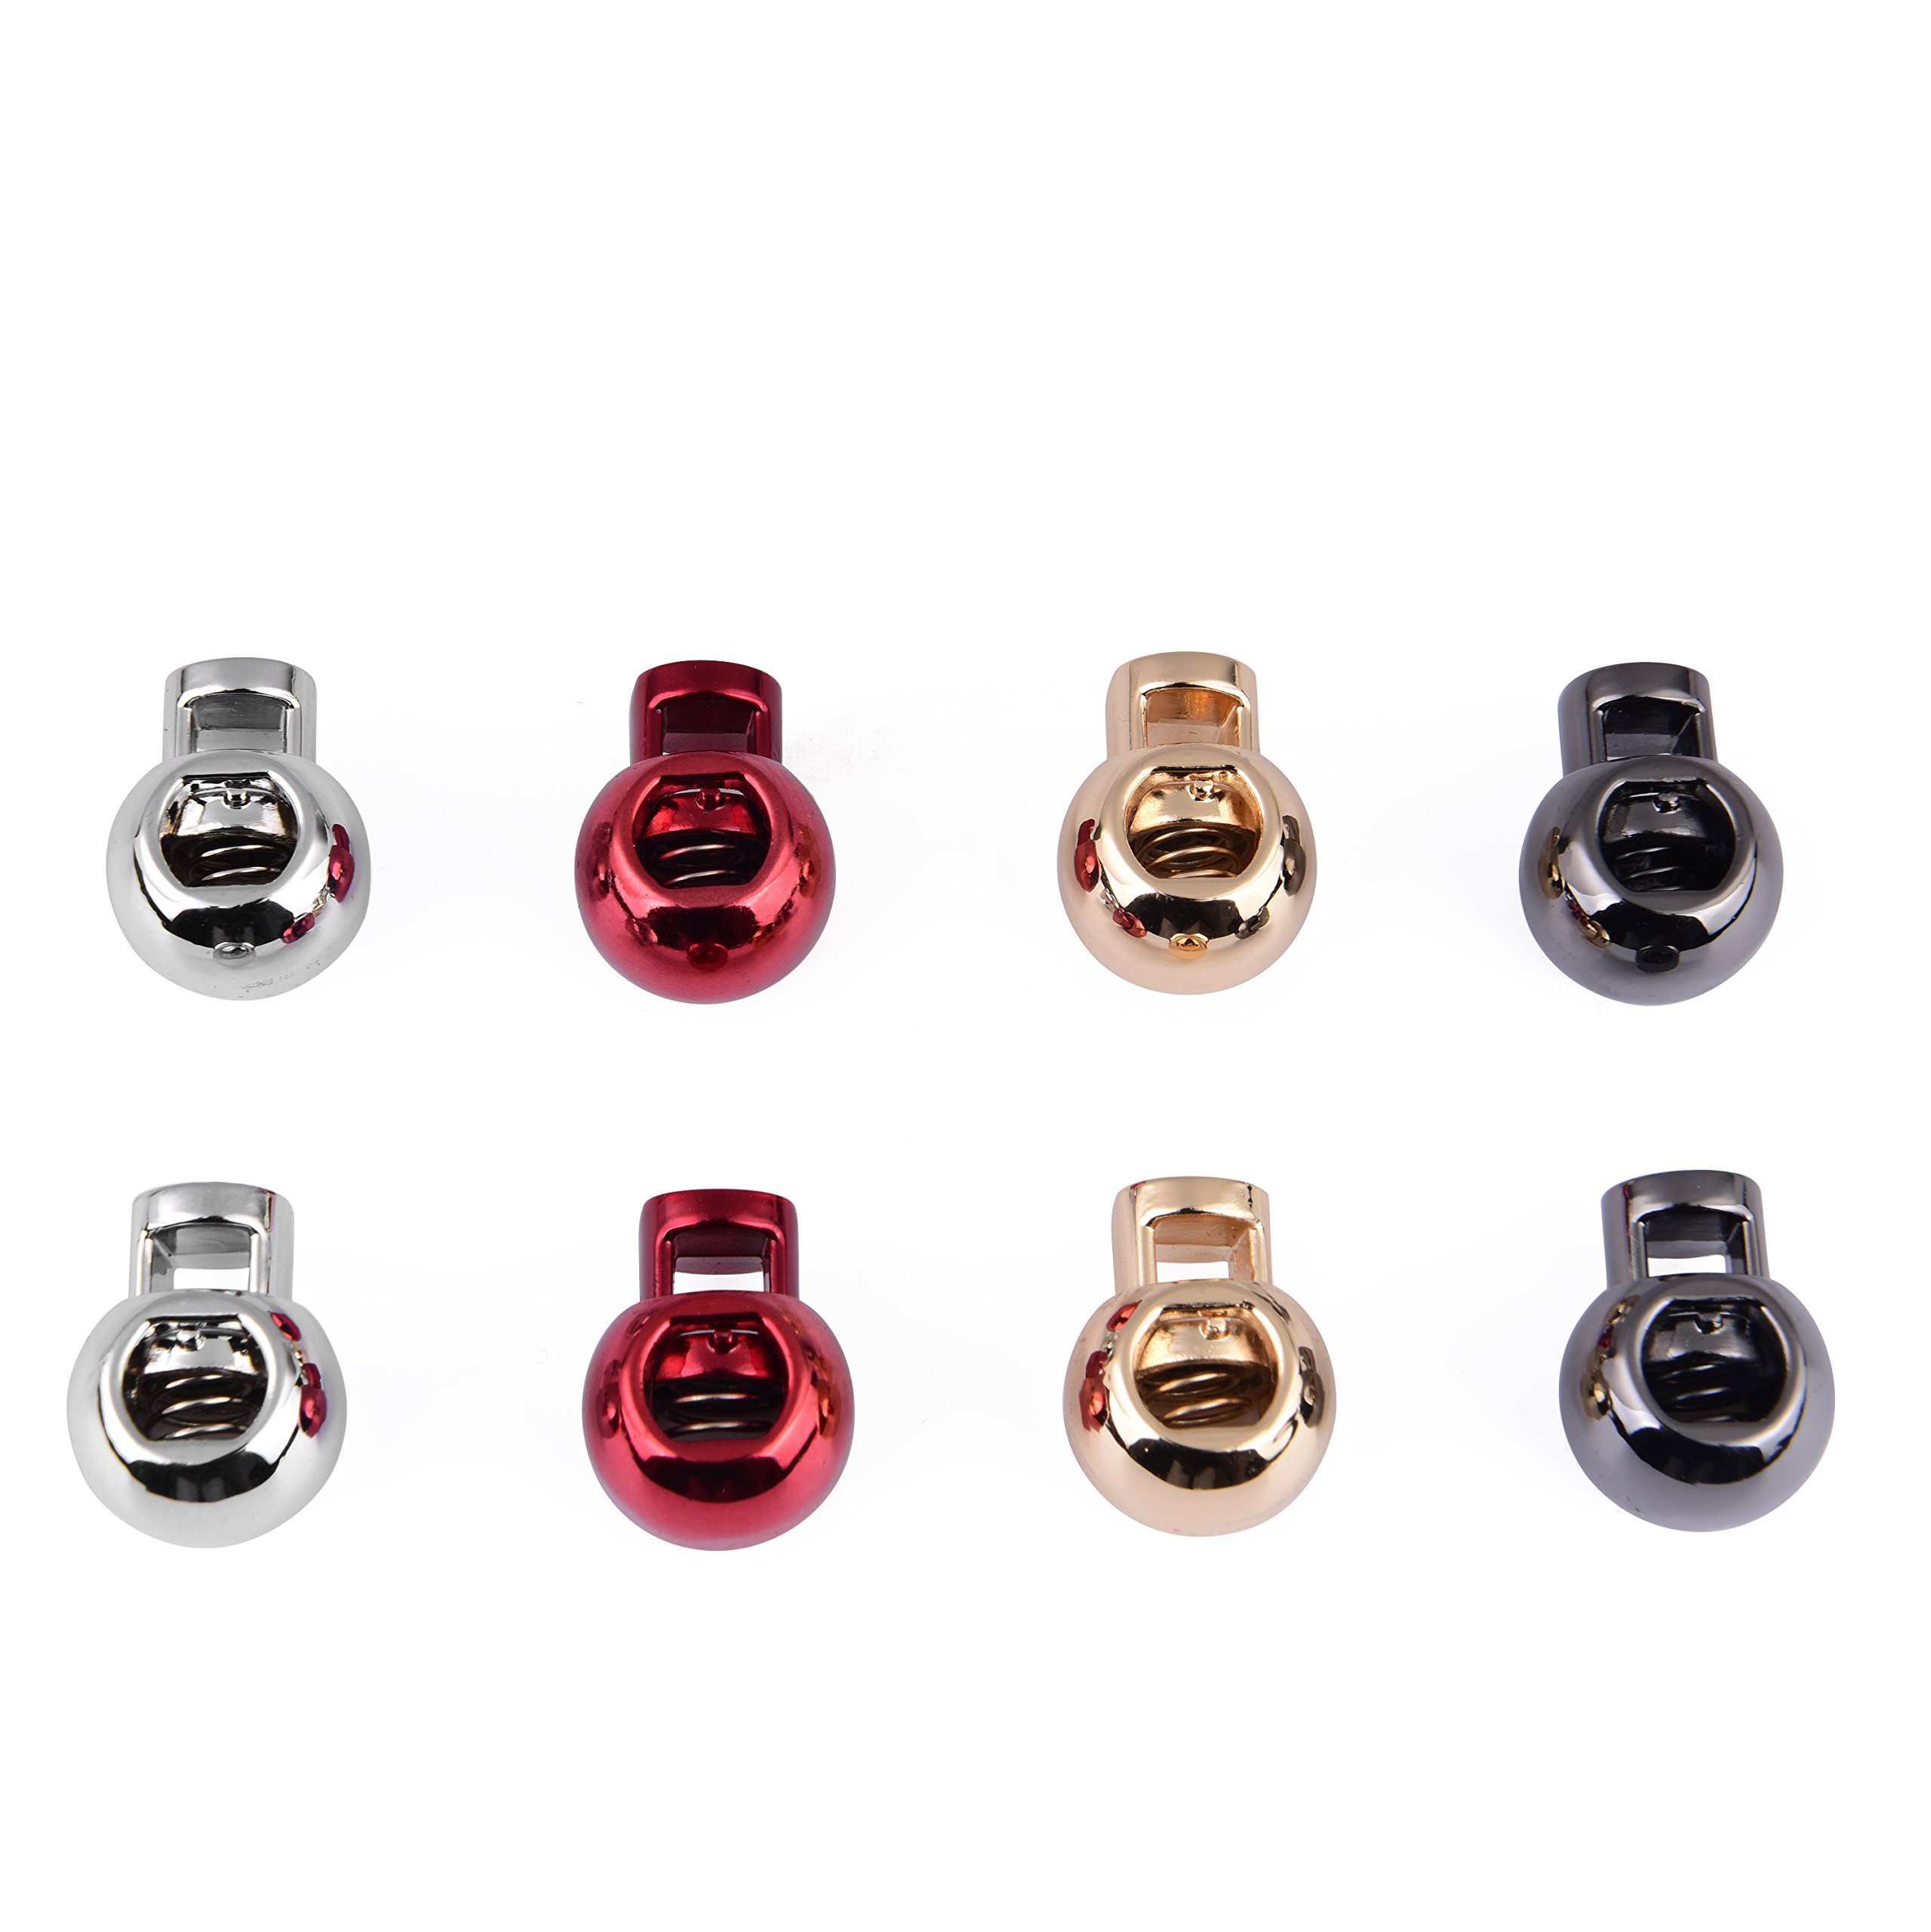 MKSF (My Kick Stay Fresh), Lace Lock Shoelace Charms, Color: Gold, Silver, Red, Black, Count: 8/Pack